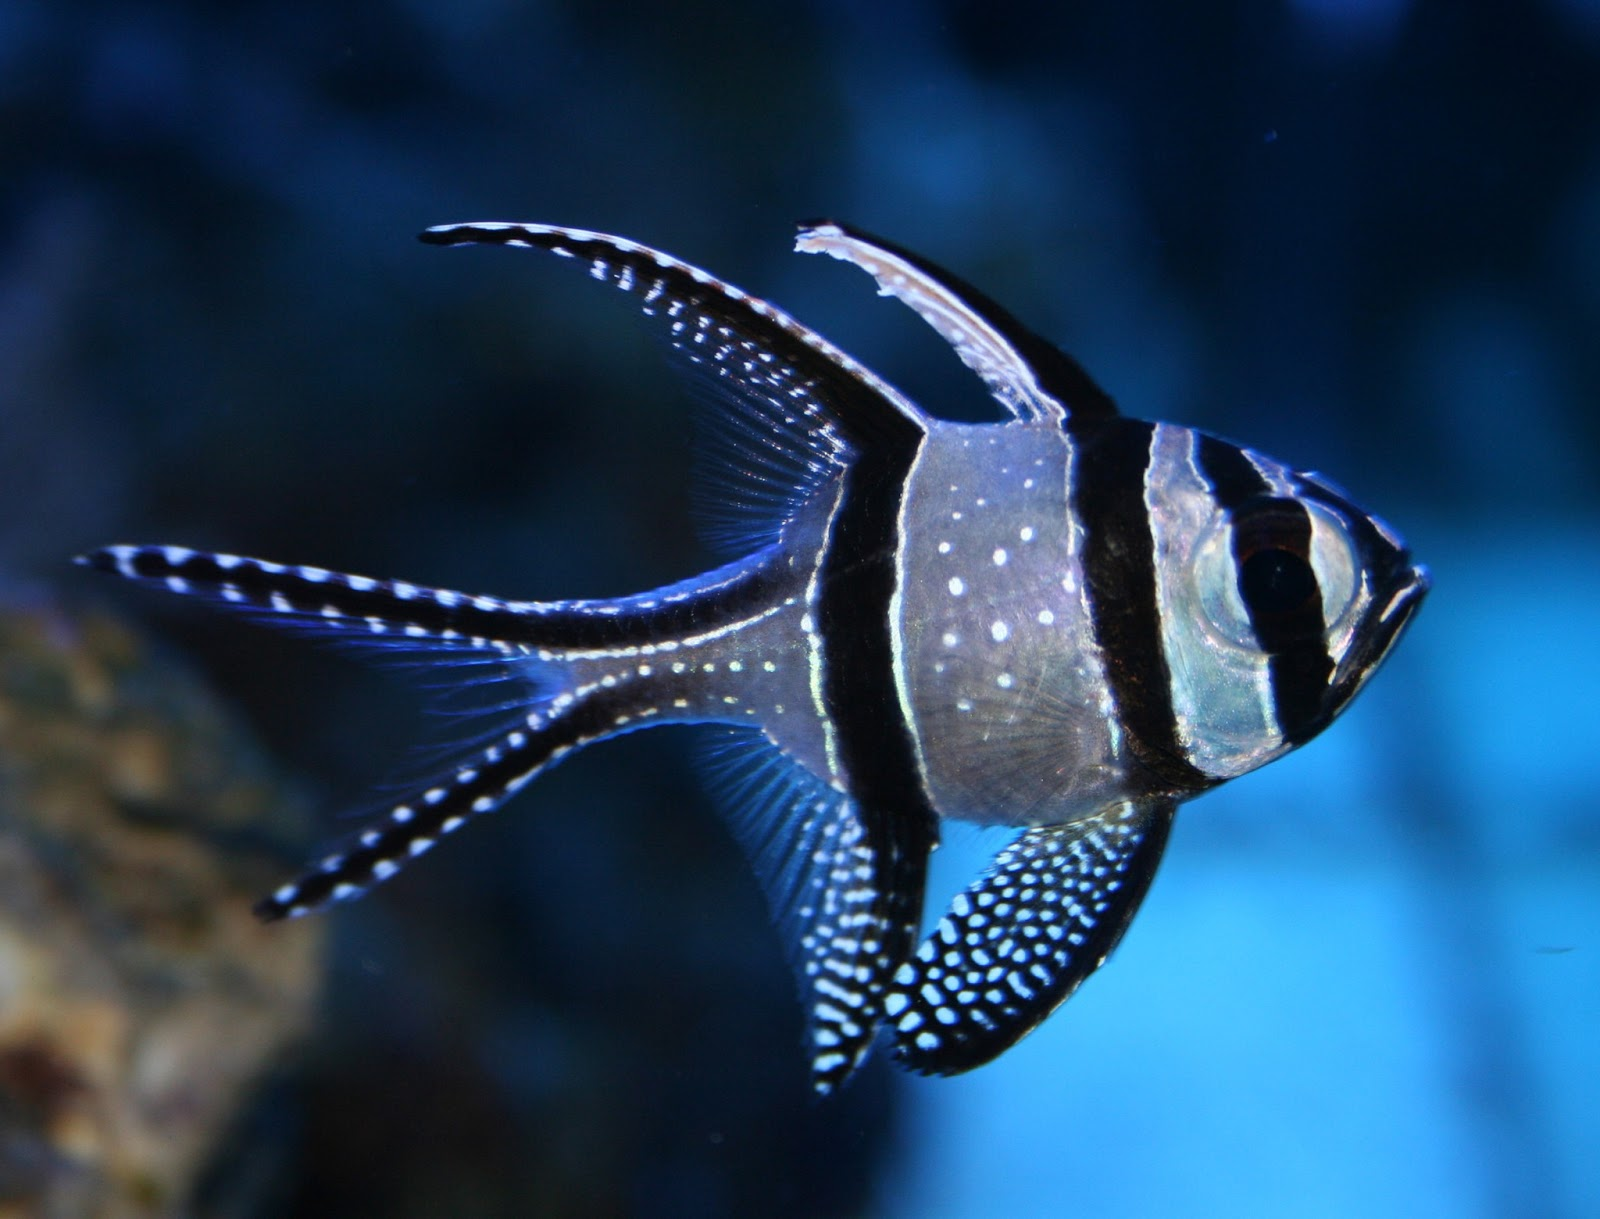 Banggai Cardinalfish Fishes World Hd Images Free Photos